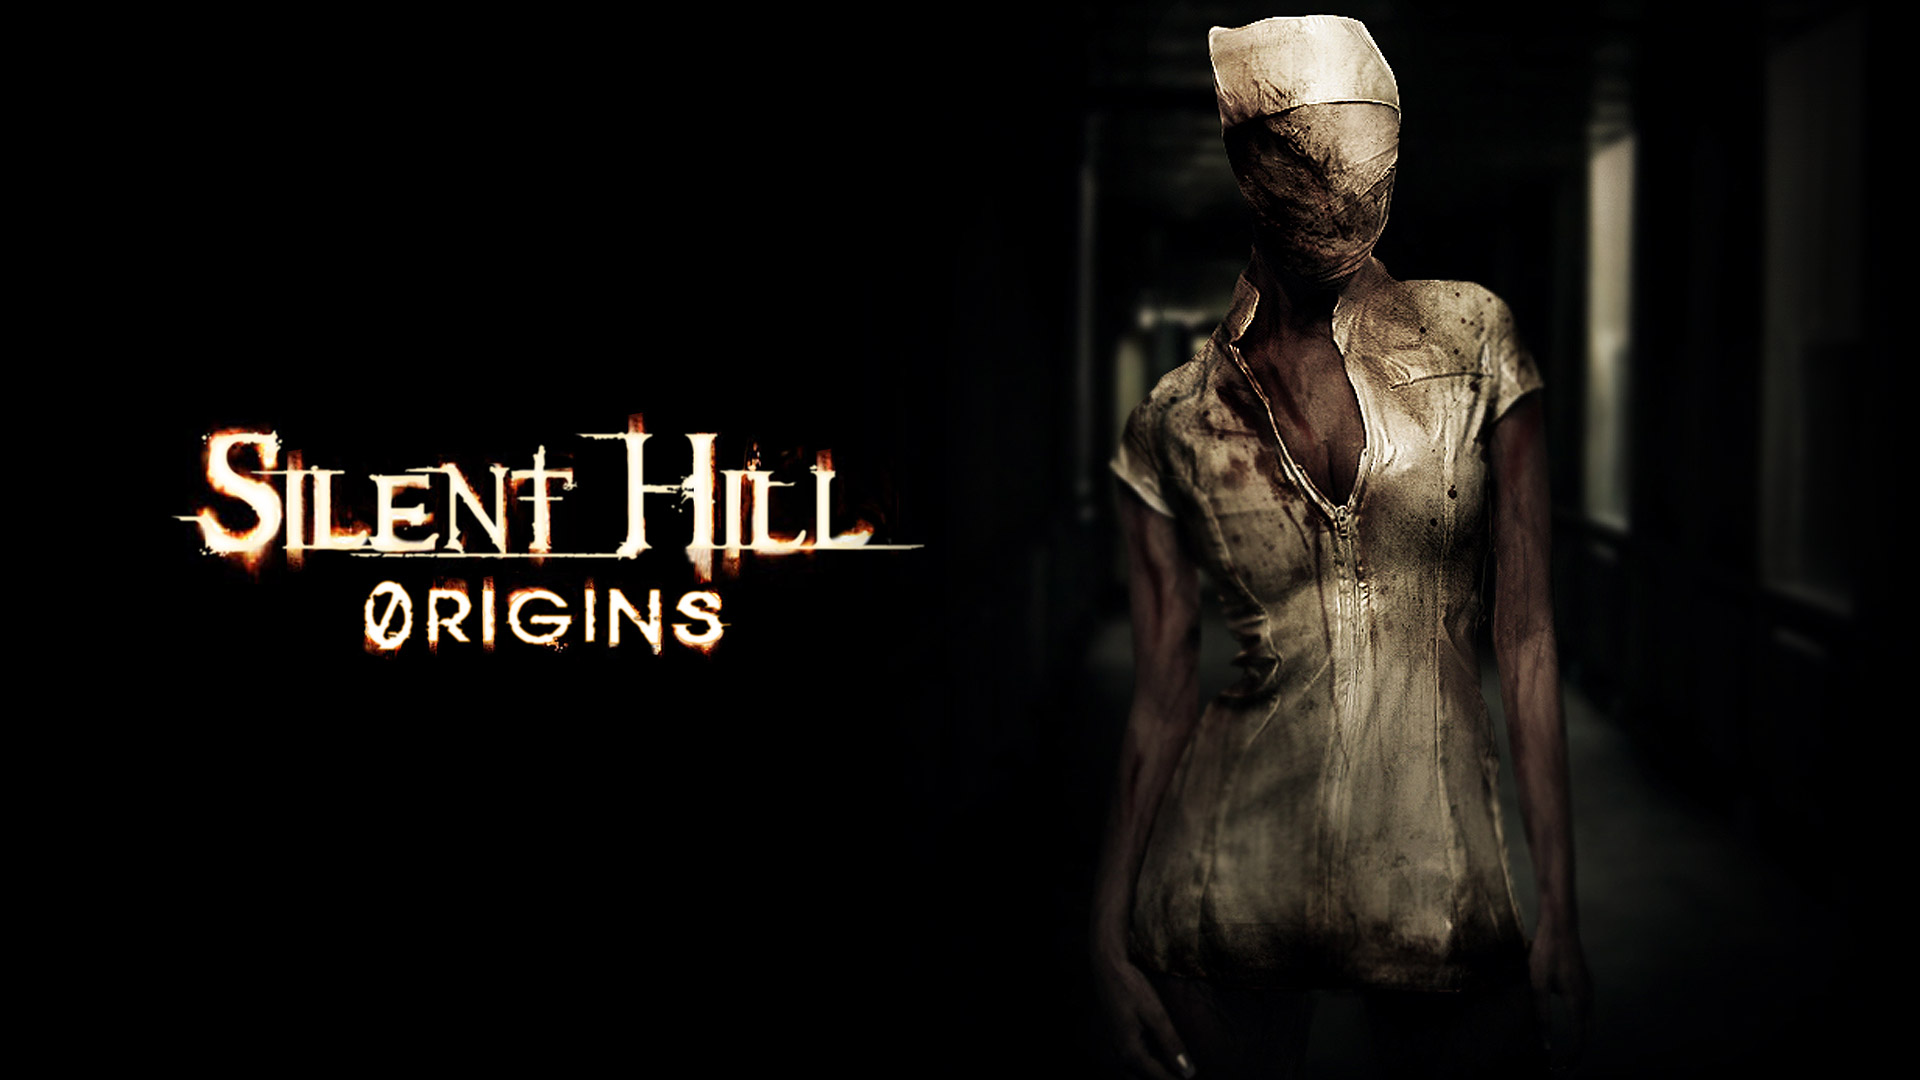 Silent Hill Images Origins Hd Wallpaper And Background Photos 34672035